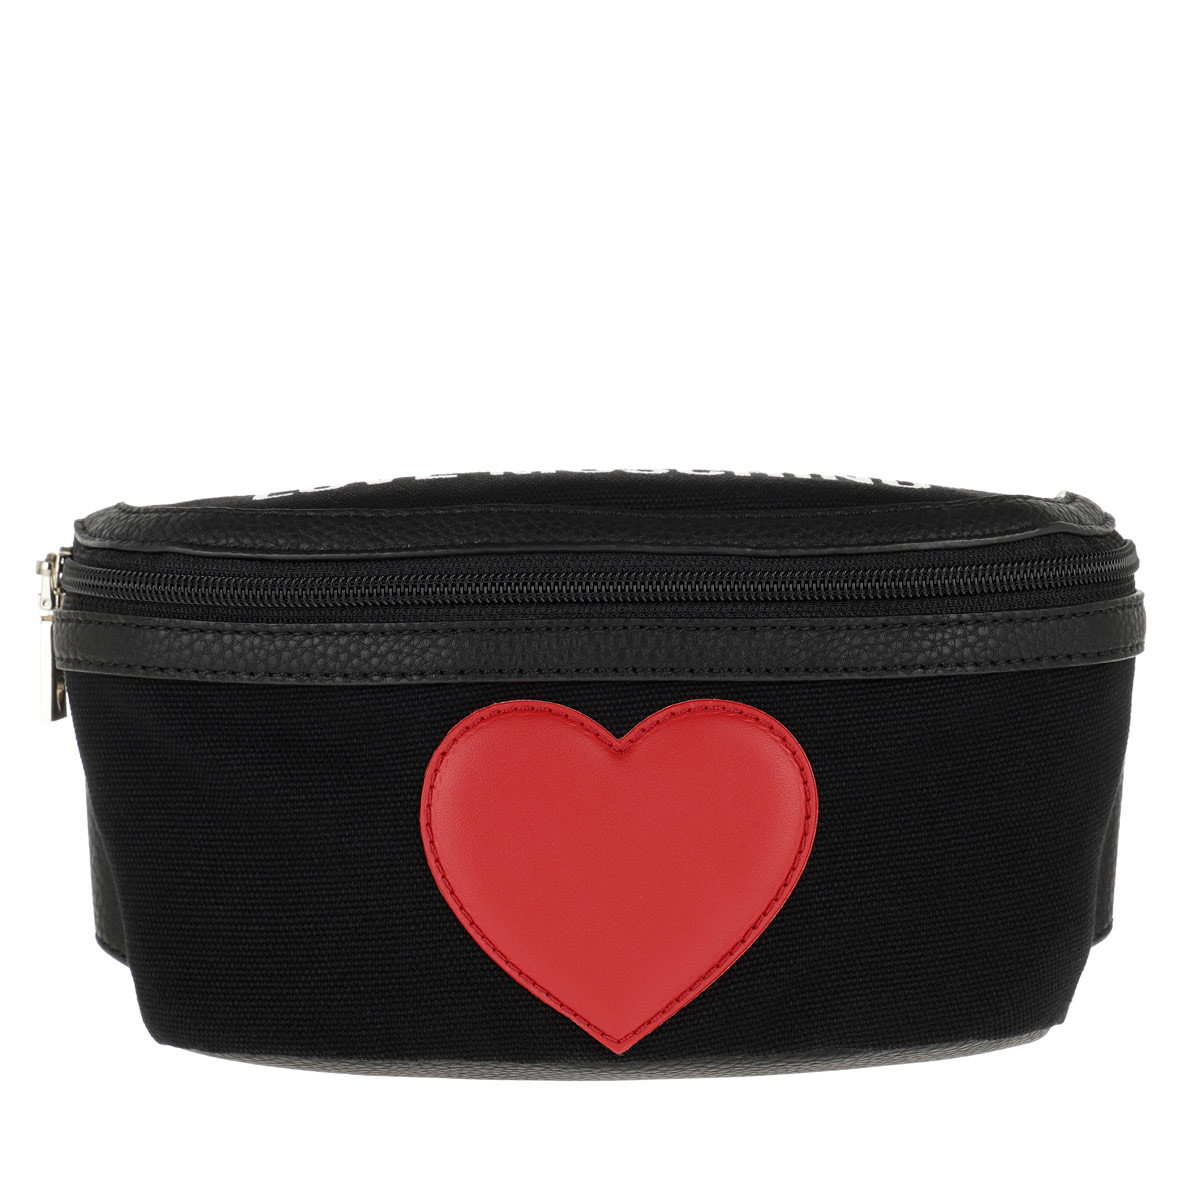 Love Moschino Gürteltasche - Canvas+Pebble Pu Belt Bag Nero - in schwarz - für Damen